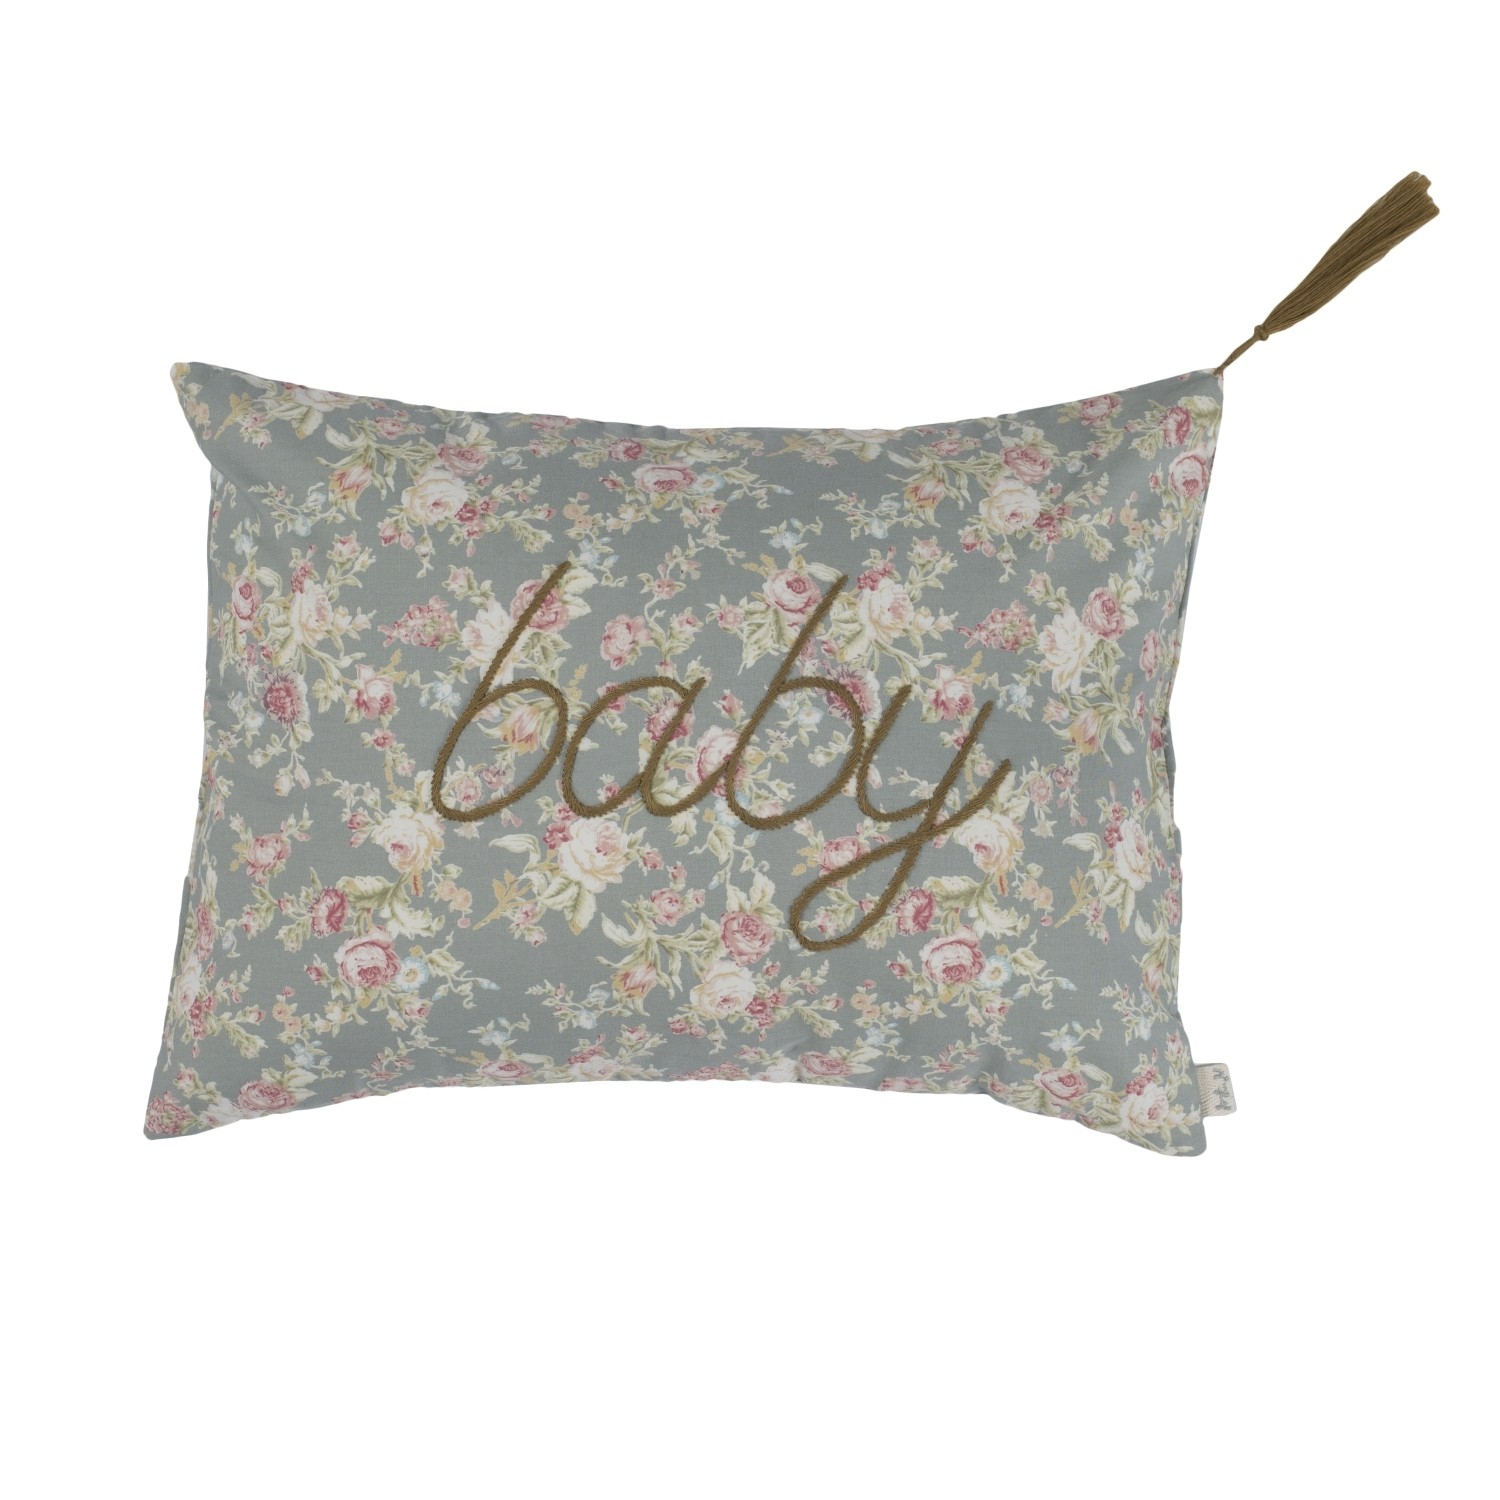 Cushion Message josephine silver grey with colorful flowers